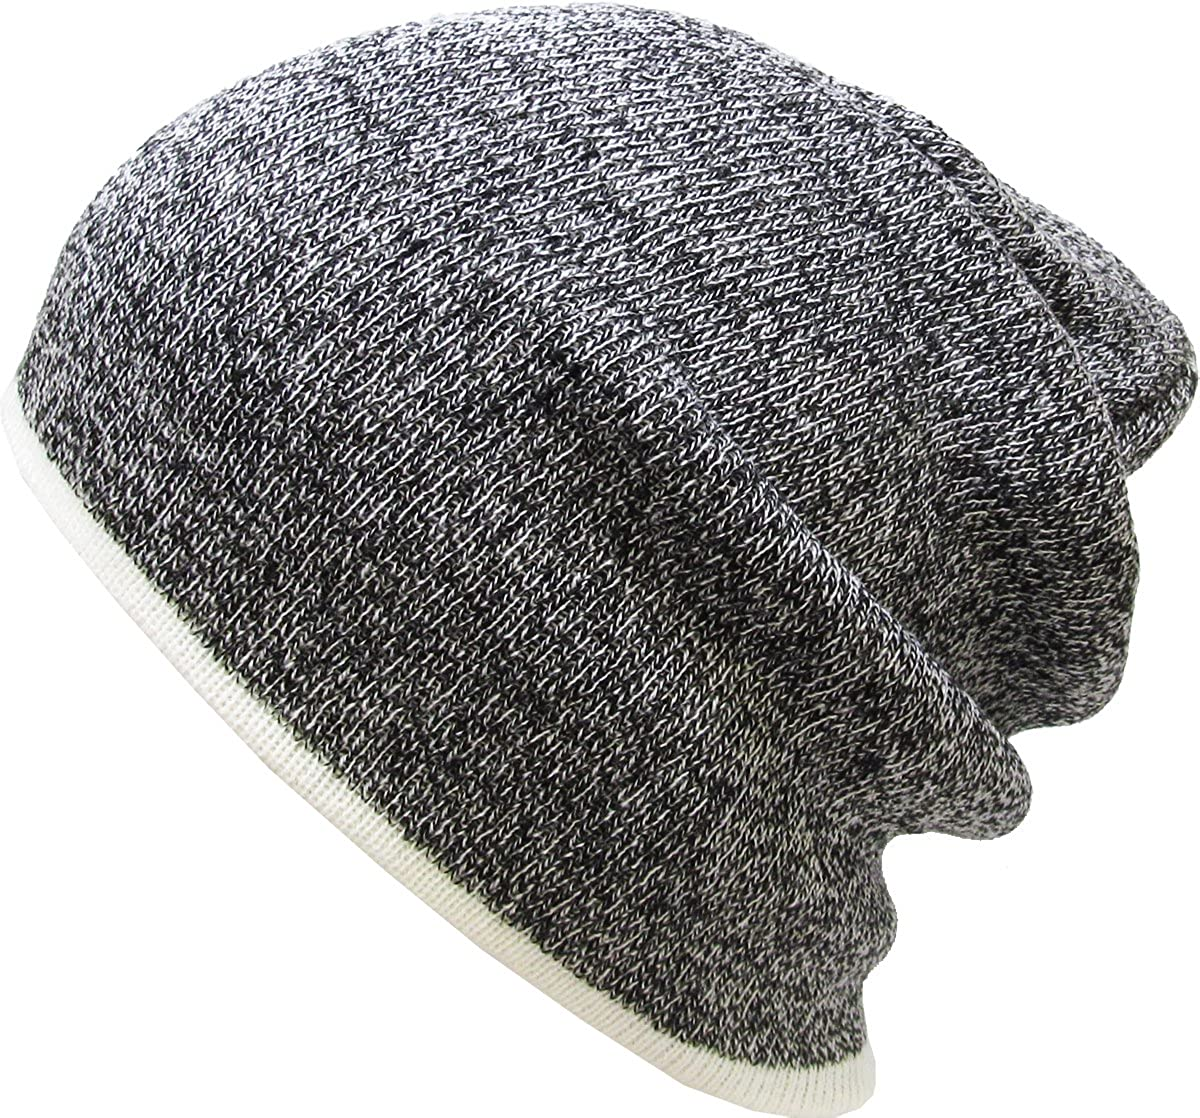 9d725fe4d46 Amazon.com  KBETHOS Warm Winter Heather Slouch Beanie Skull Cap Hat (One  Size